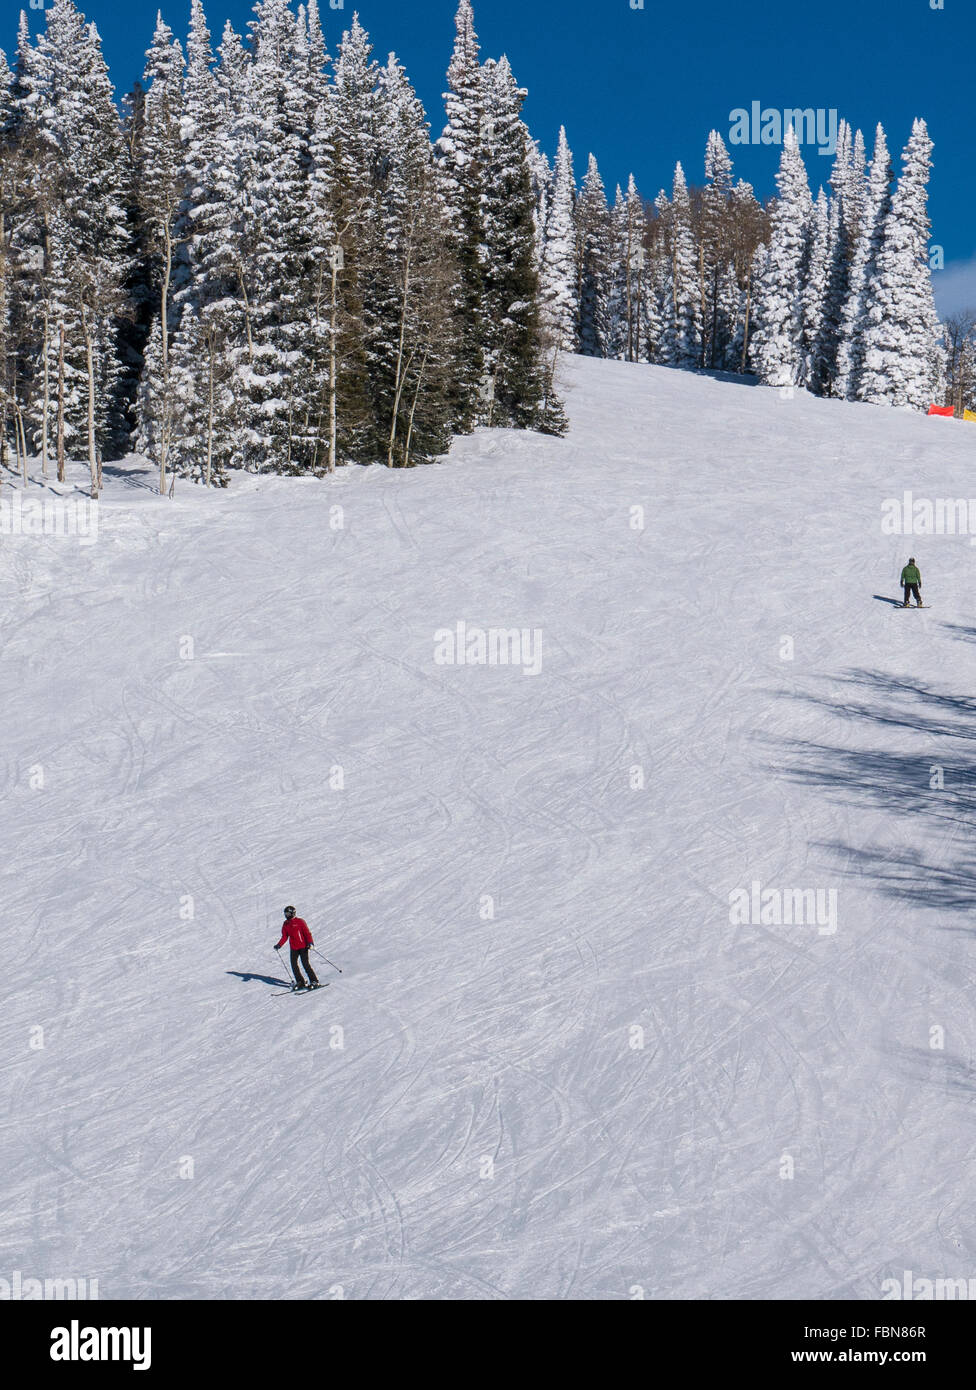 Skiers descend the High Noon trail, Steamboat Ski Resort, Steamboat Springs, Colorado. - Stock Image